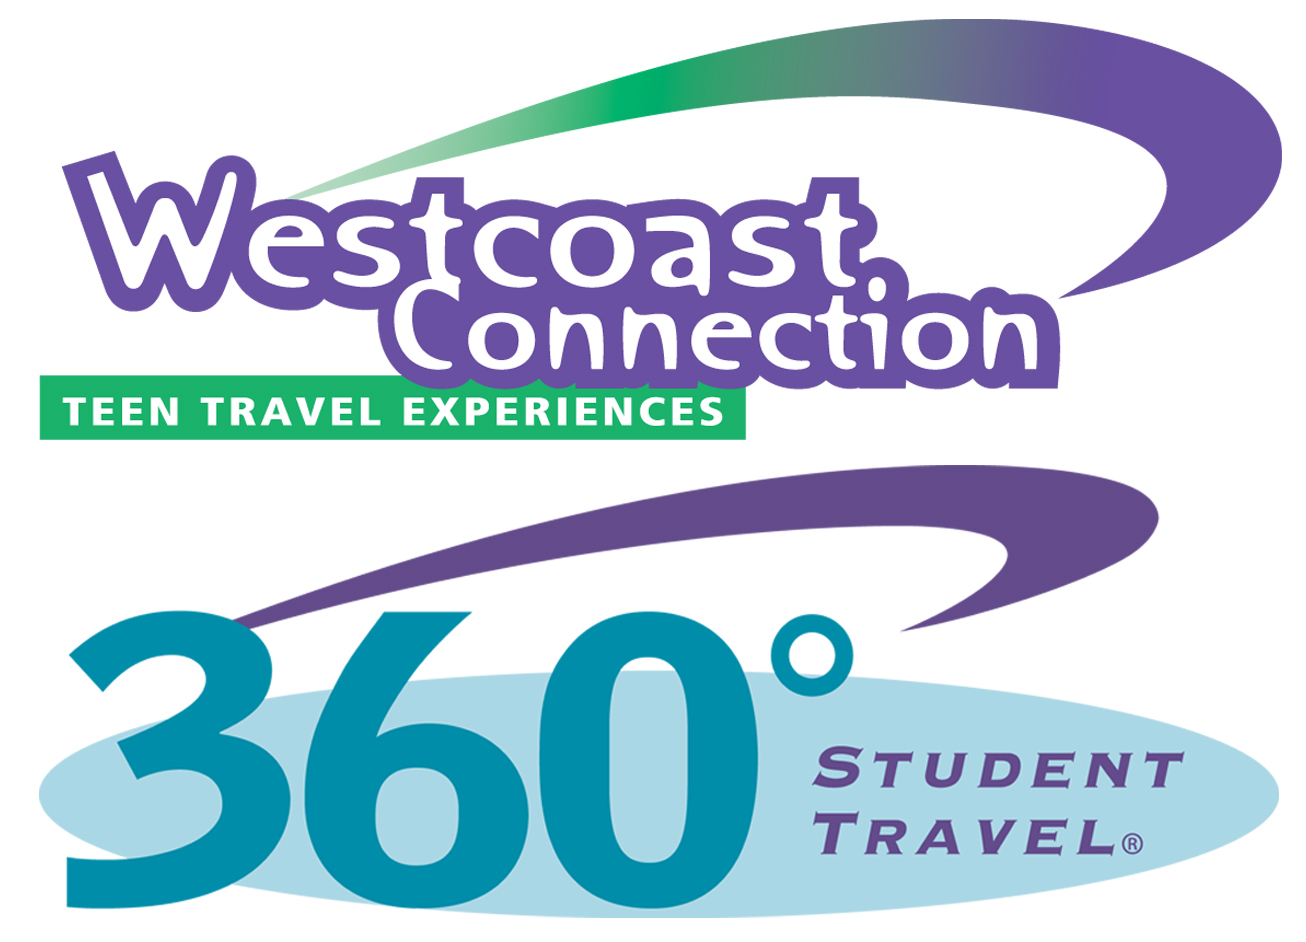 Summer Program Westcoast Connection / 360 Student Travel